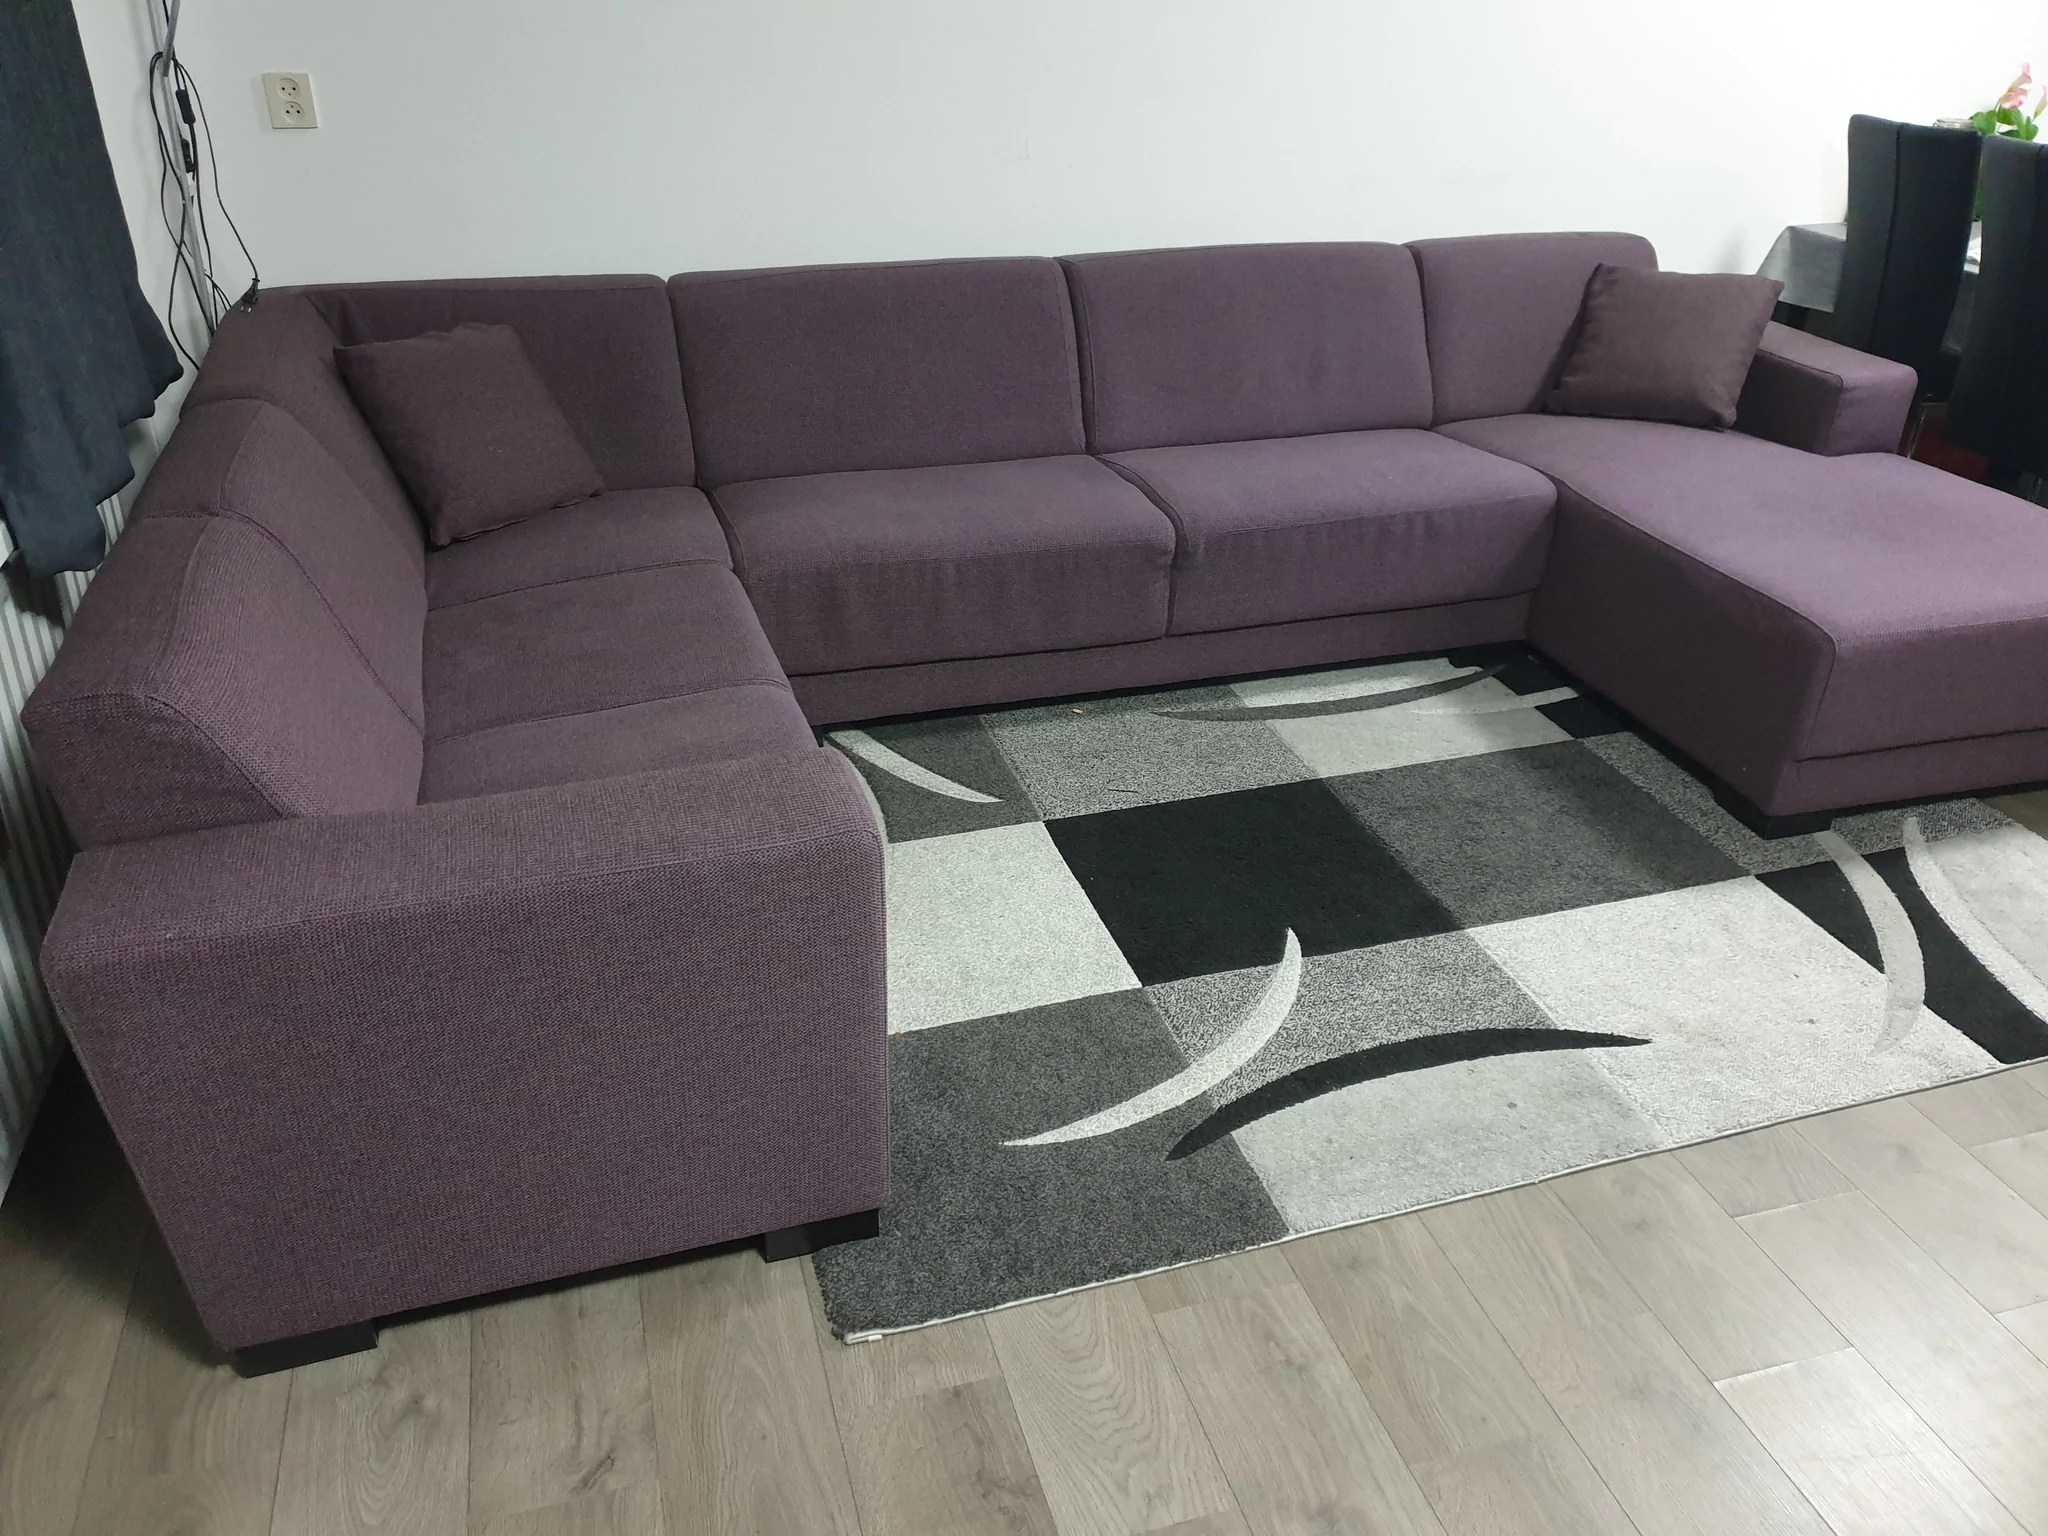 Paarse Bank Mooi Nette Paars Groot U Bank Banxtel Refurbished Couches